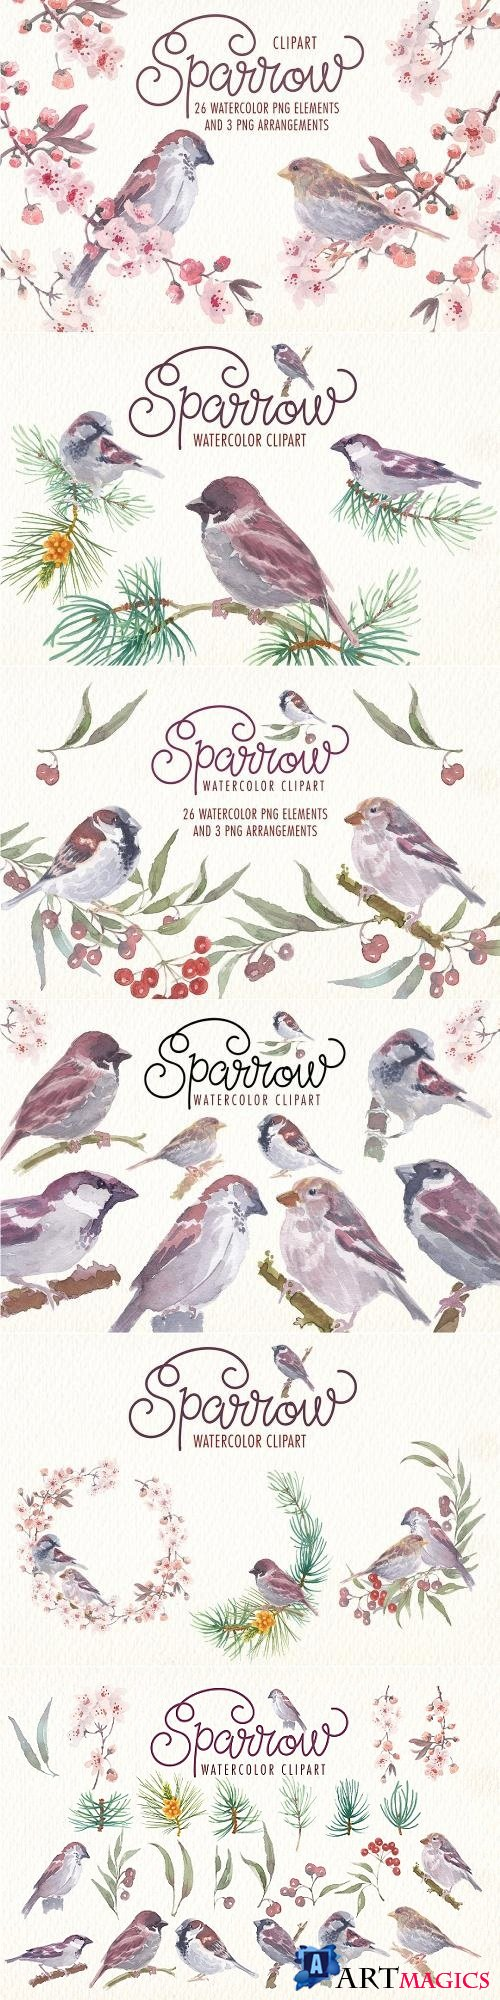 Sparrow Bird Watercolor Clipart - 2248520